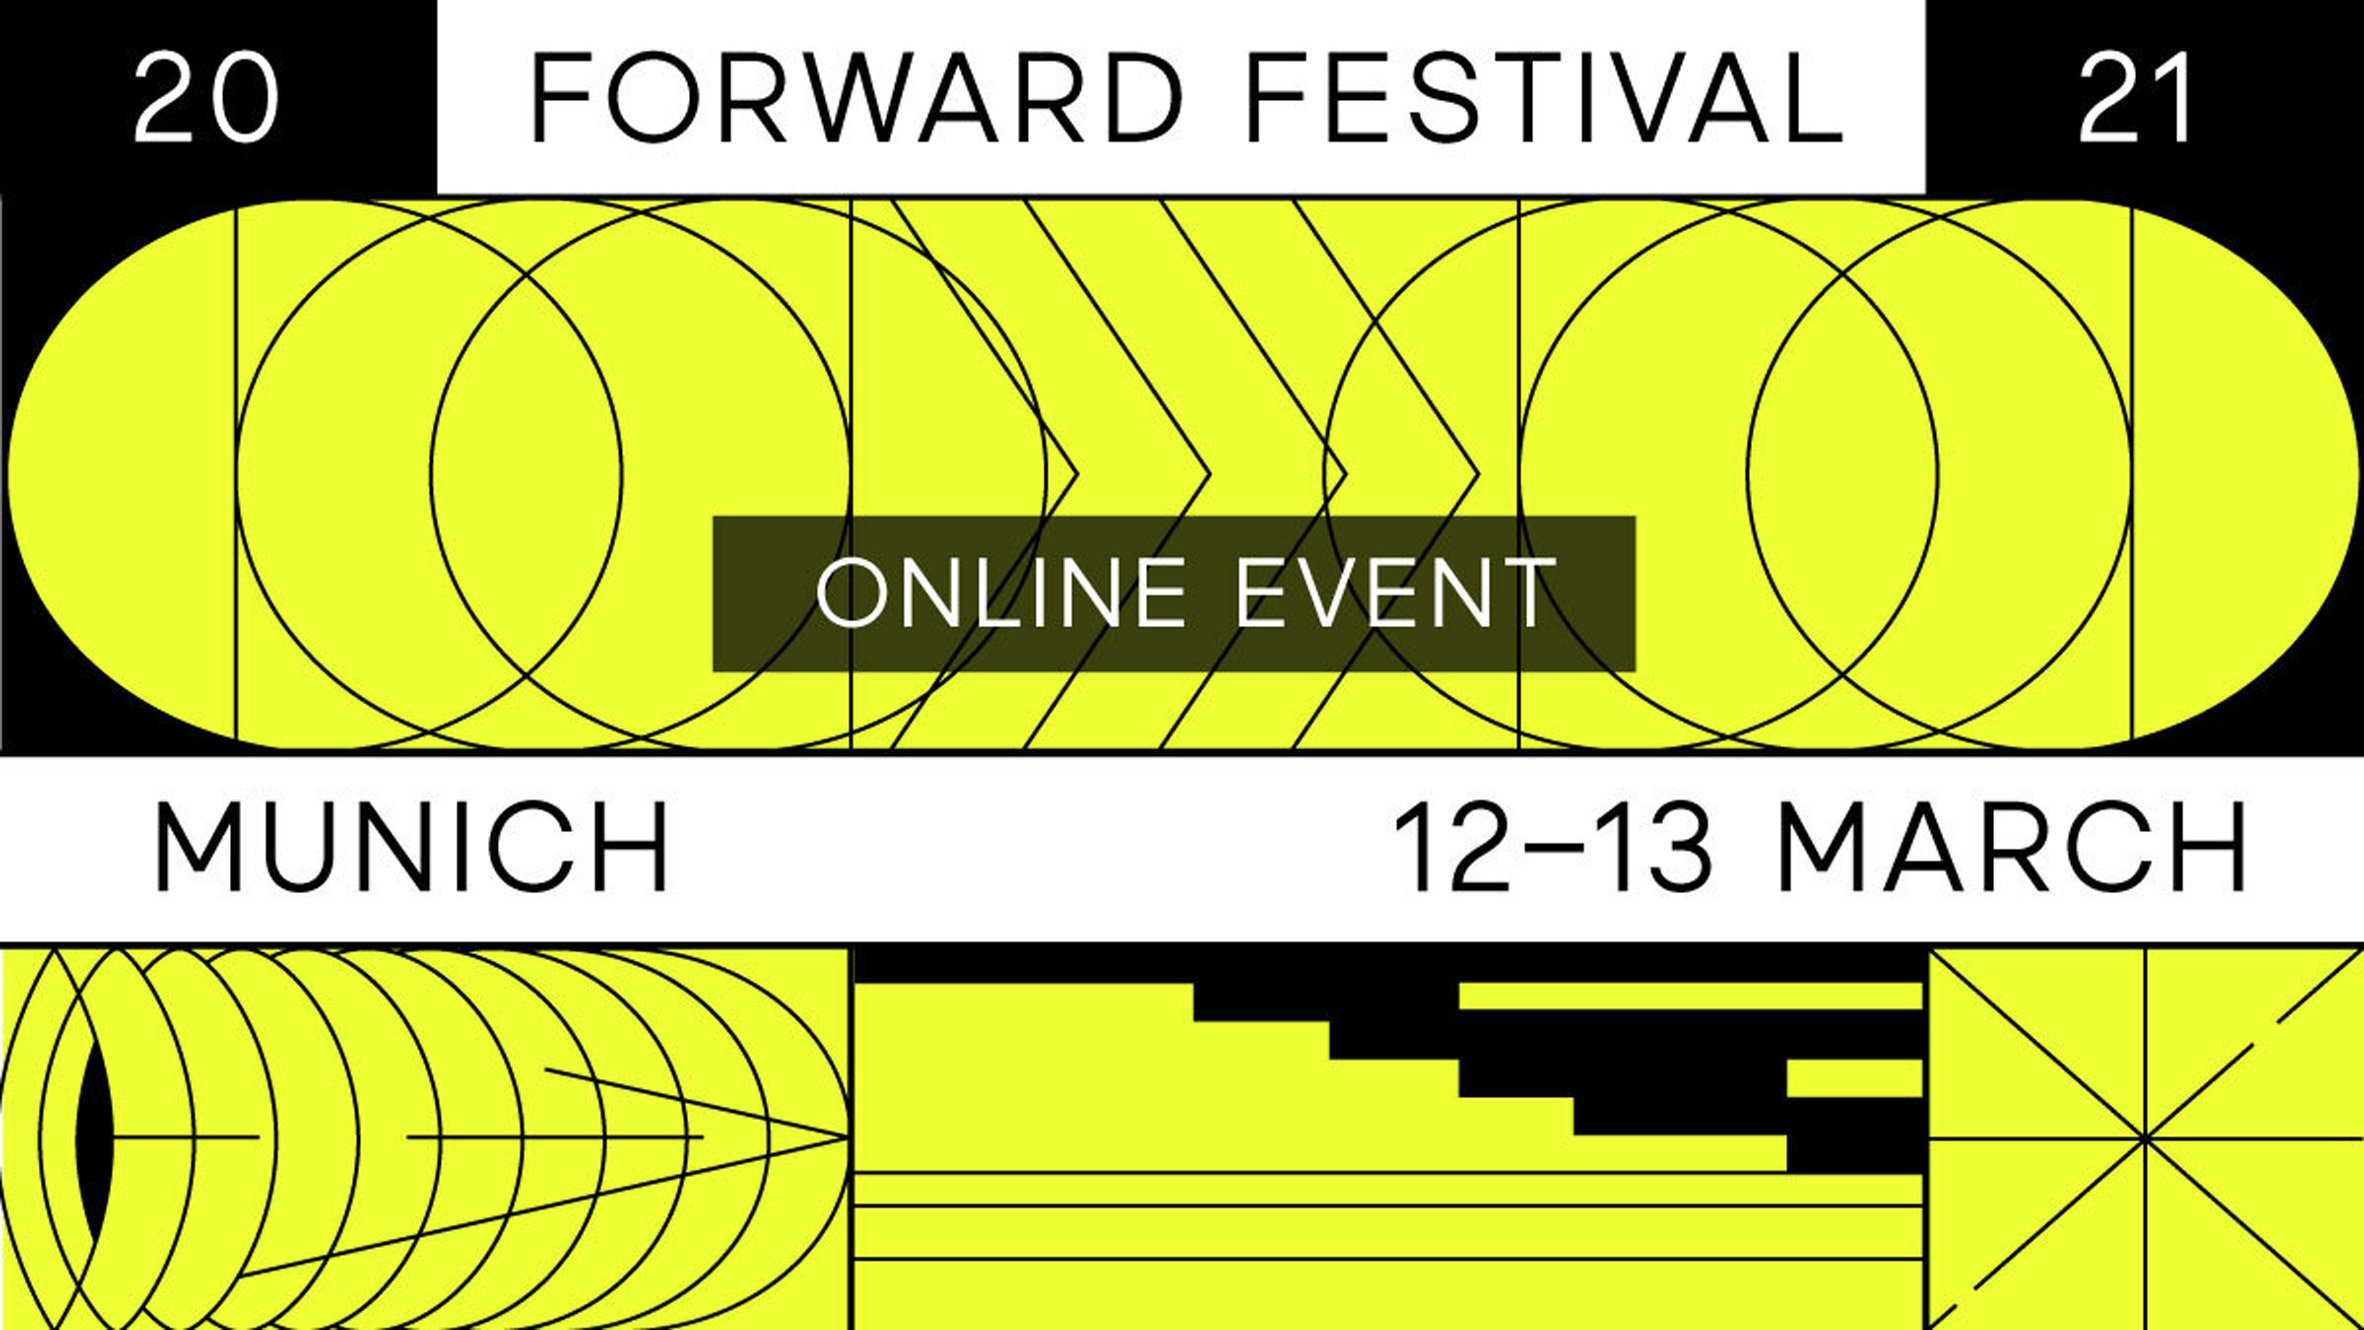 Forward Festival Munich as featured in Dezeen Events Guide March roundup